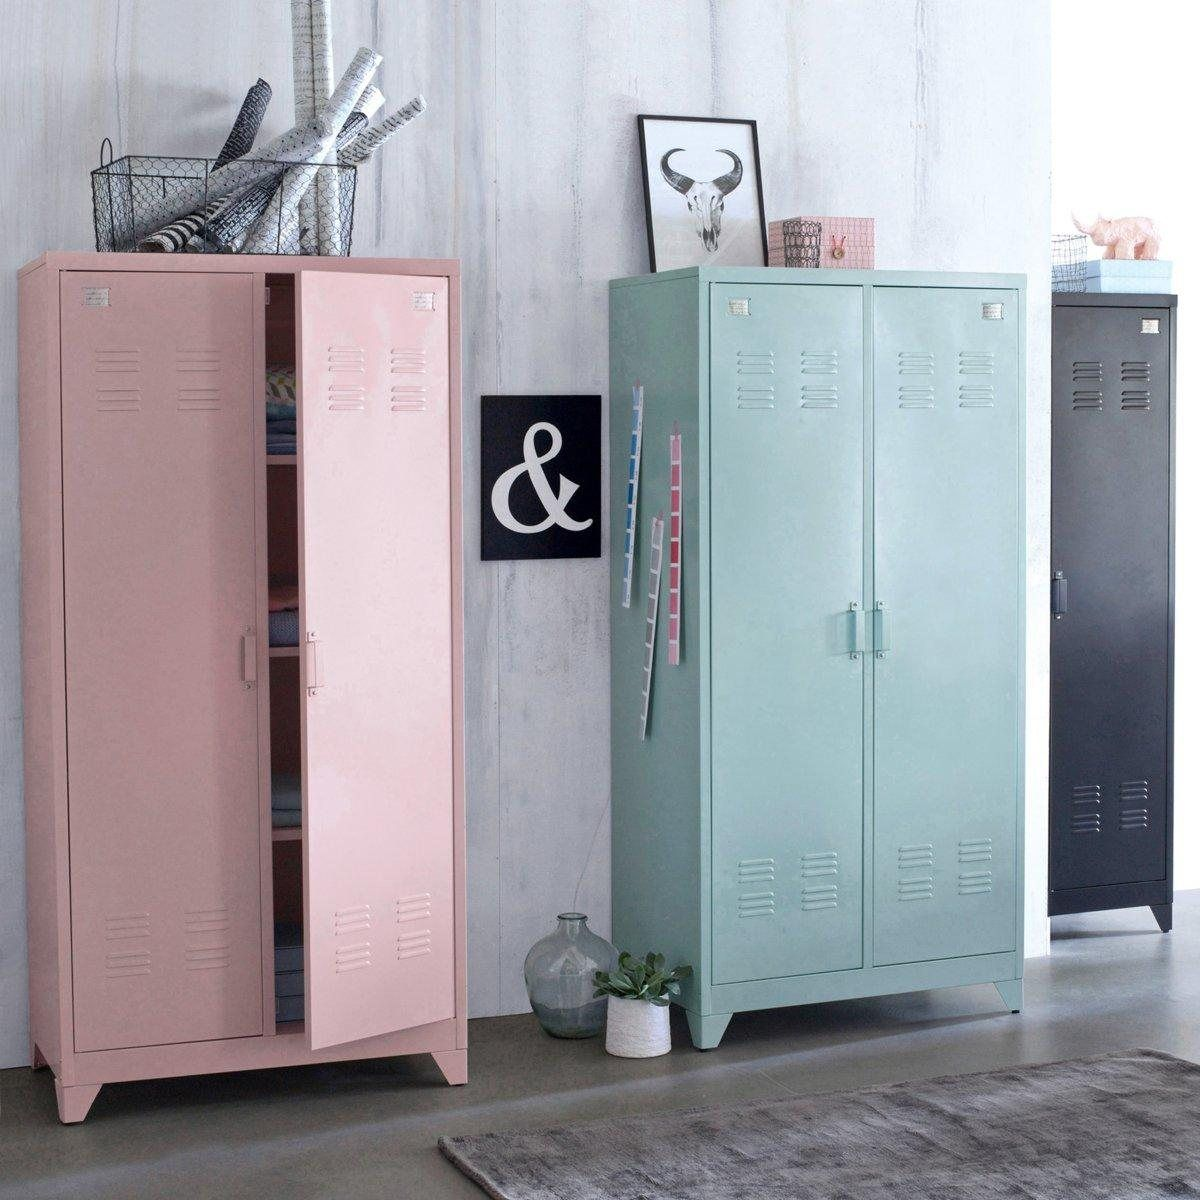 armoire vestiaire m tal 2 portes hiba la redoute interieurs la redoute mobile armoire. Black Bedroom Furniture Sets. Home Design Ideas